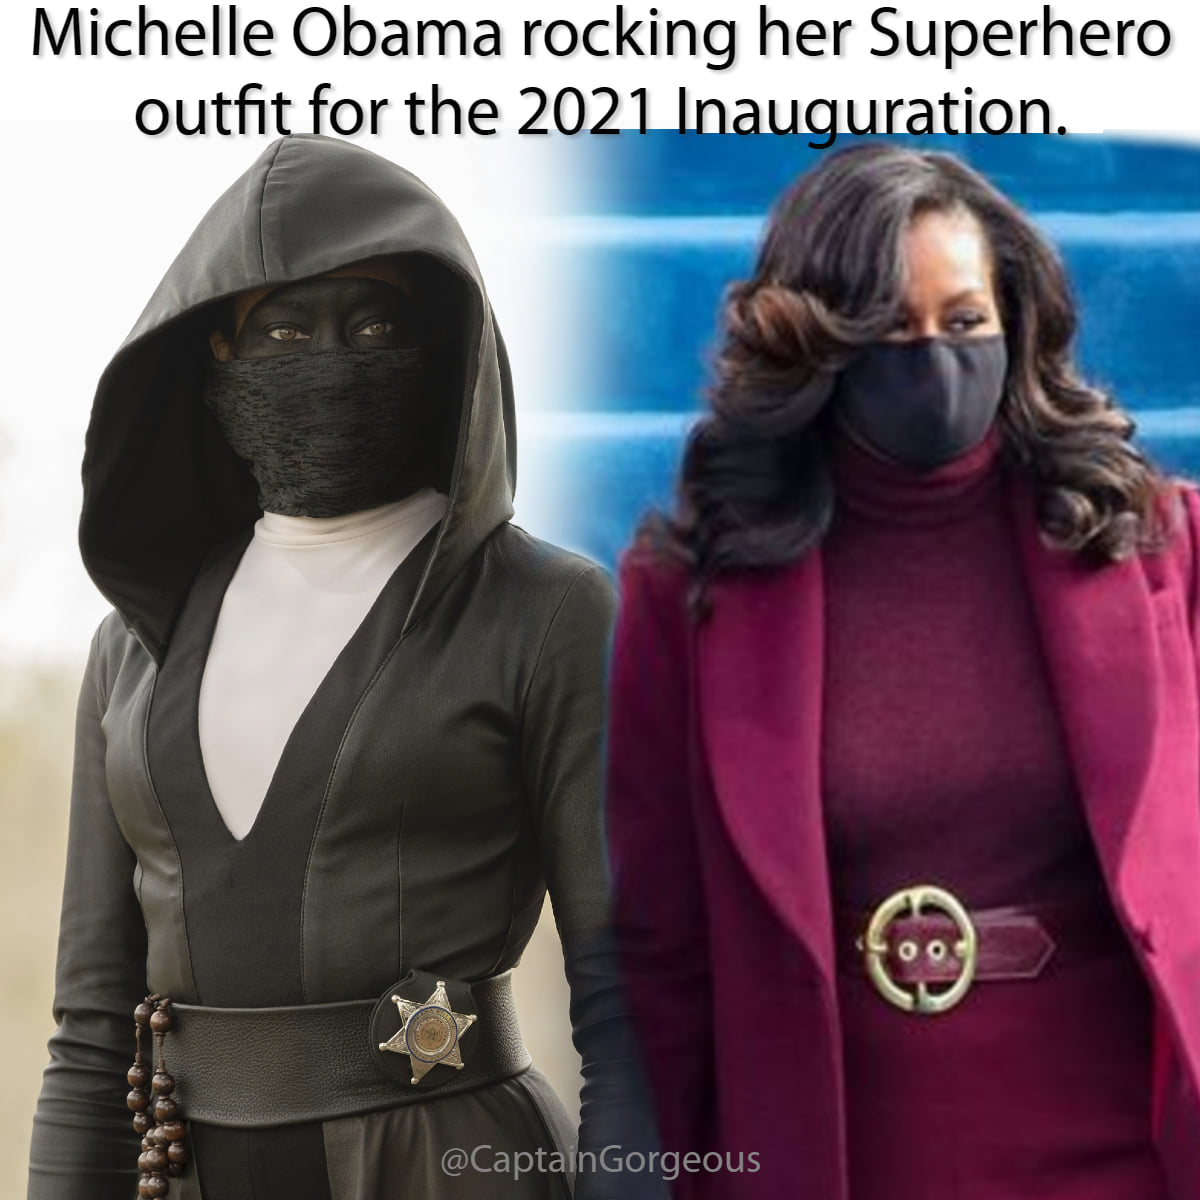 At #InaugurationDay, @MichelleObama channeling @ReginaKing a la Sister Night of @watchmen, watching fellow #HeroWomanOfColor @KamalaHarris becoming #VicePresident today. Ready to burst into action if needed. #superheroes #NoCapesNeeded #glassceilingshattered #WomanCrushWednesday